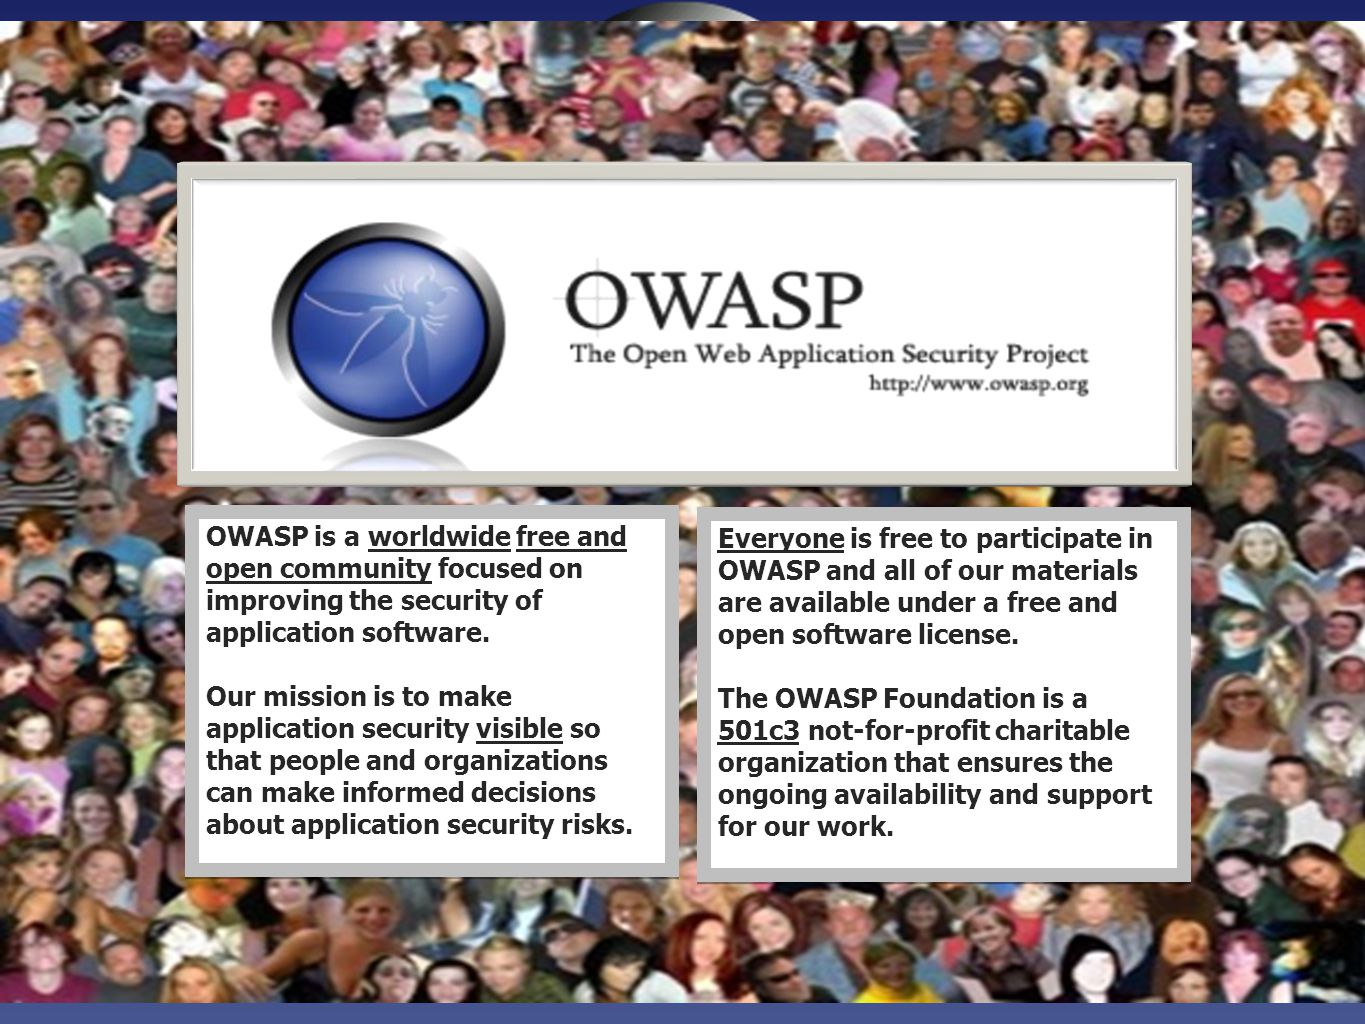 OWASP World OWASP is a worldwide free and open community focused on improving the security of application software.